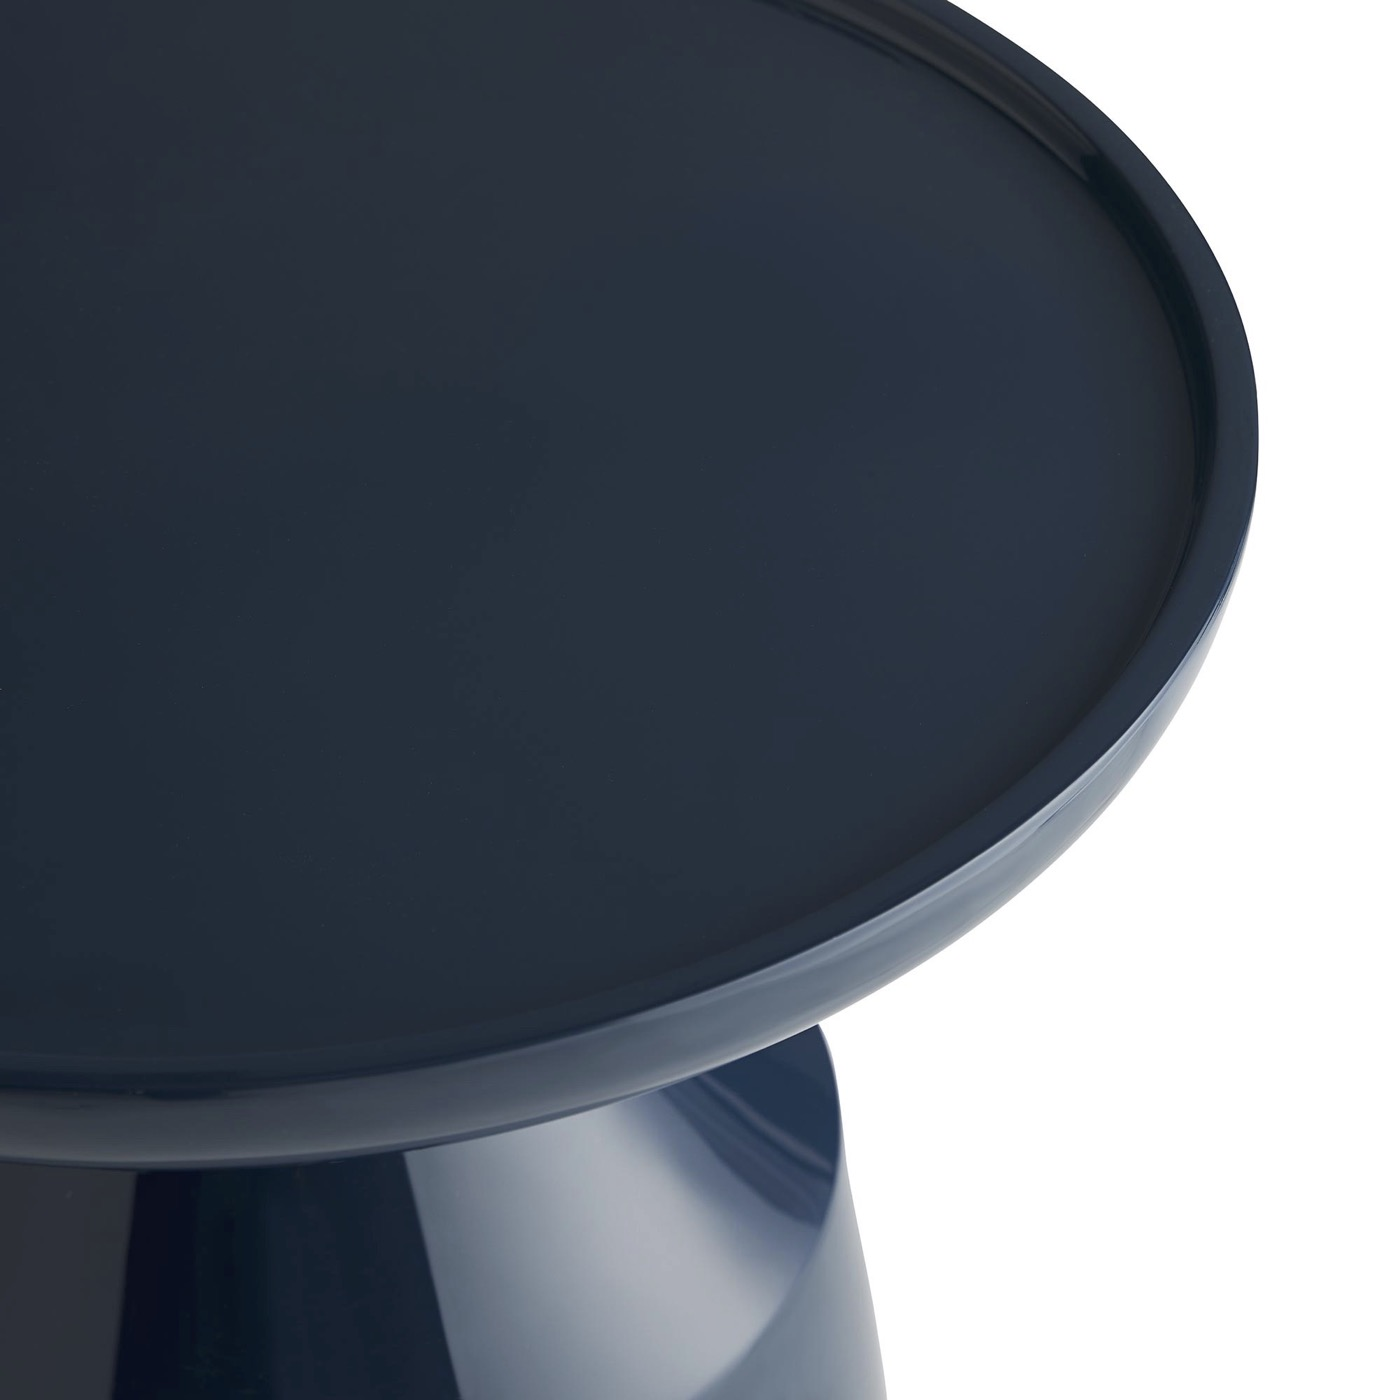 Turista Lacquer Side Table